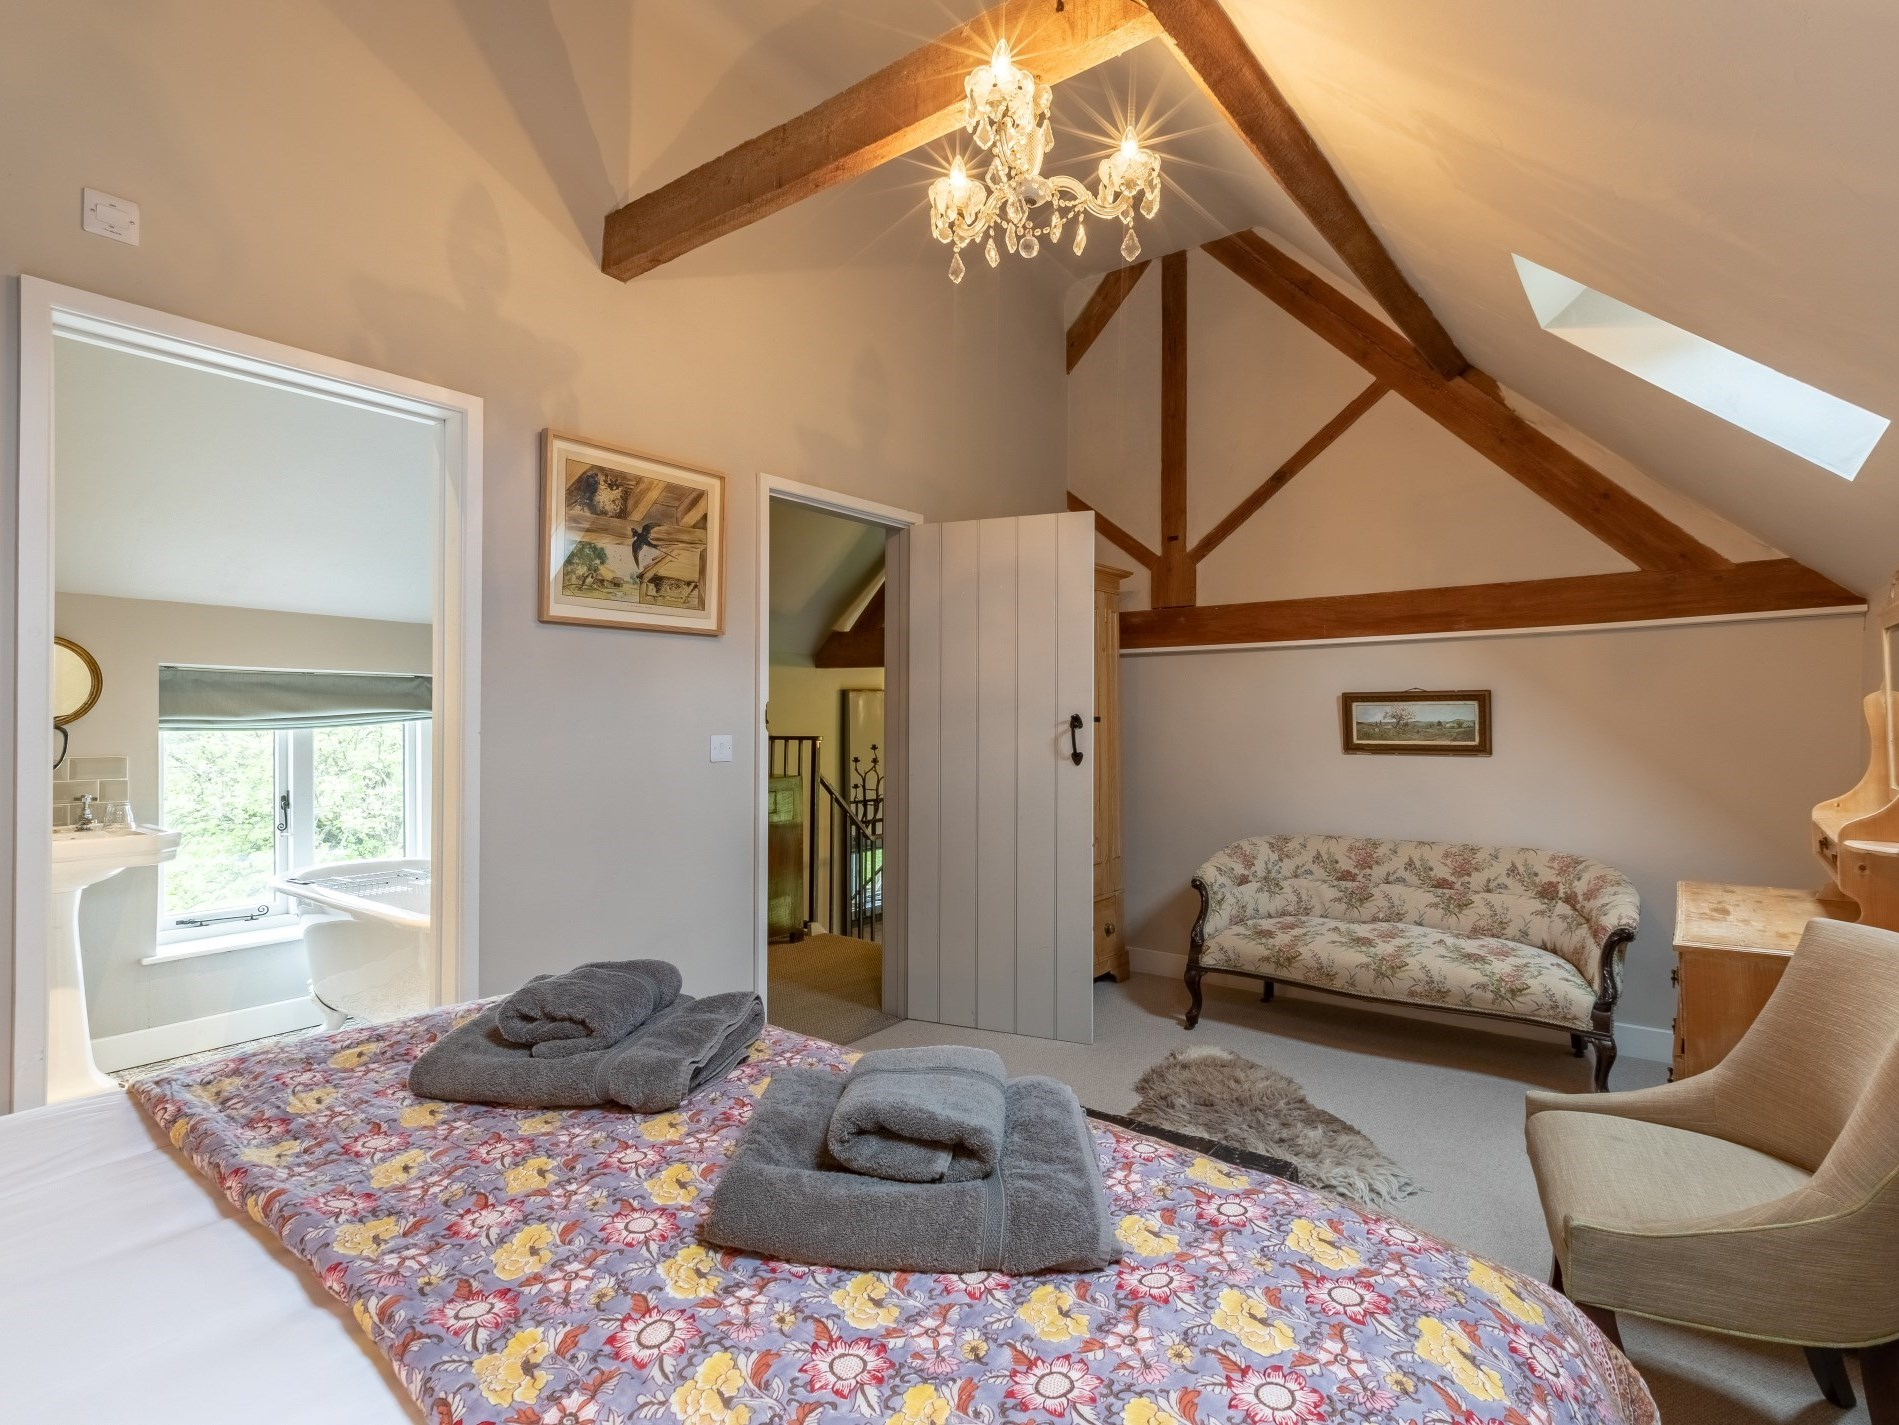 4 Bedroom Cottage in Ludlow, Heart of England